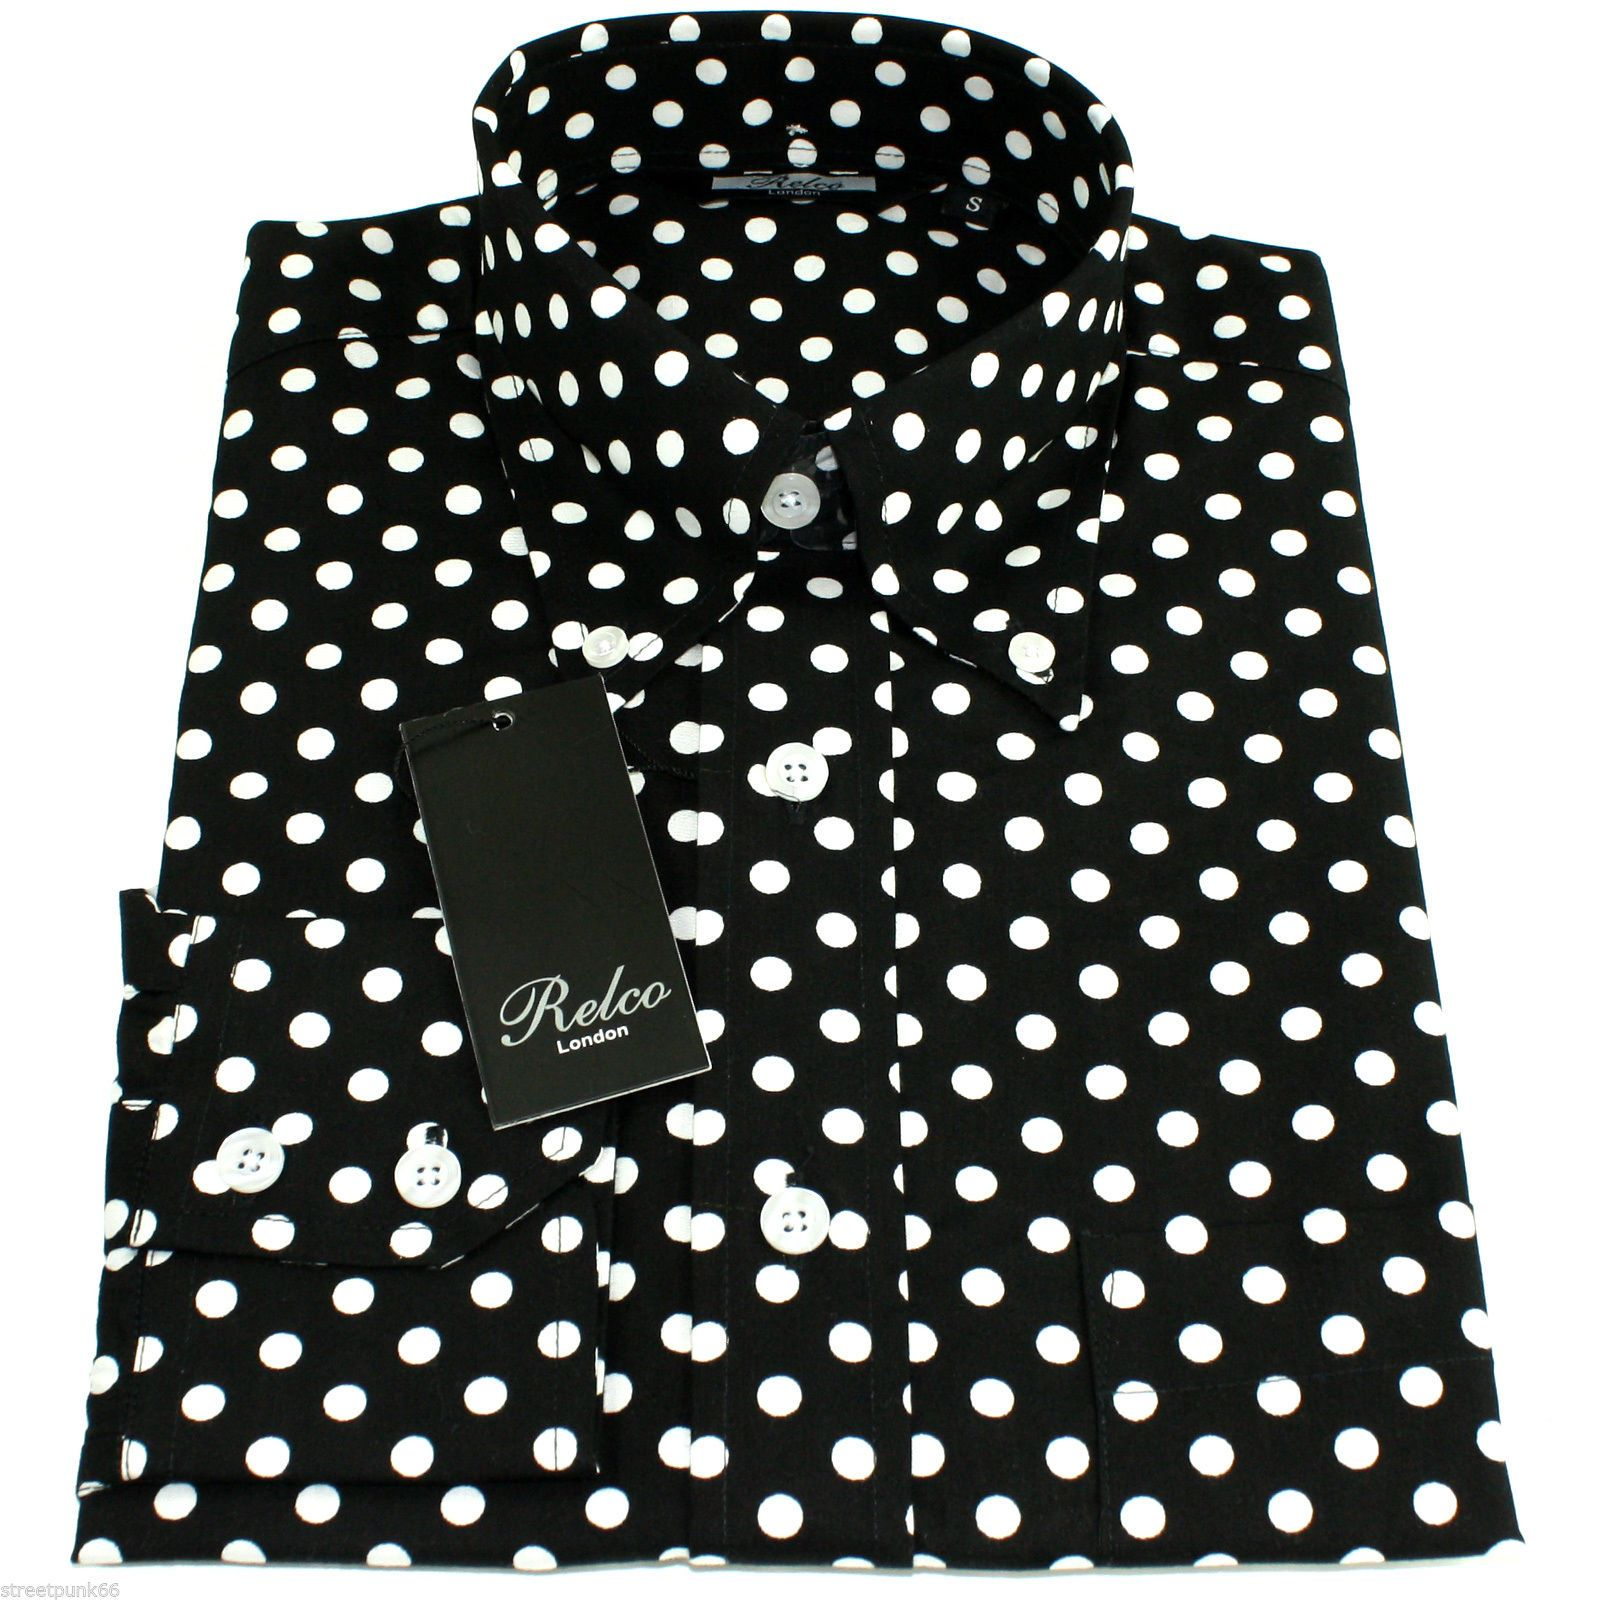 Crazy4bling Men's White with Black Polka Dot Accents Dress Shirt, Size Medium. Sold by Crazy4Bling. $ $ Petite Adele Little Girls White Black Polka Dot Lace Tulle Tutu Dress 2T